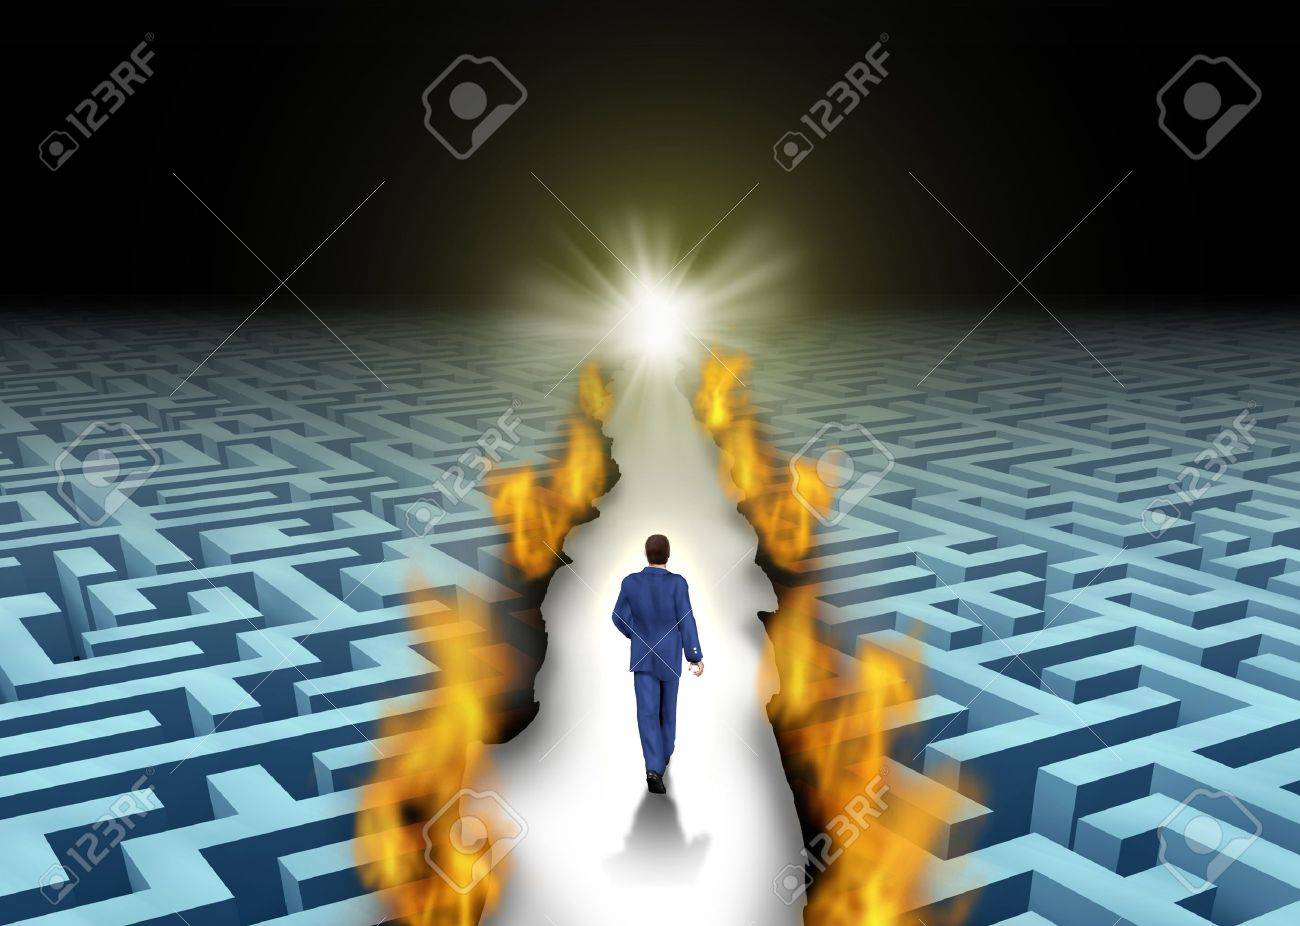 Innovative leadership and trail blazing or trailblazing business concept with a businessman walking through a maze or labyrinth that is open due to a burning path as a symbol of creative solutions Stock Photo - 18410803